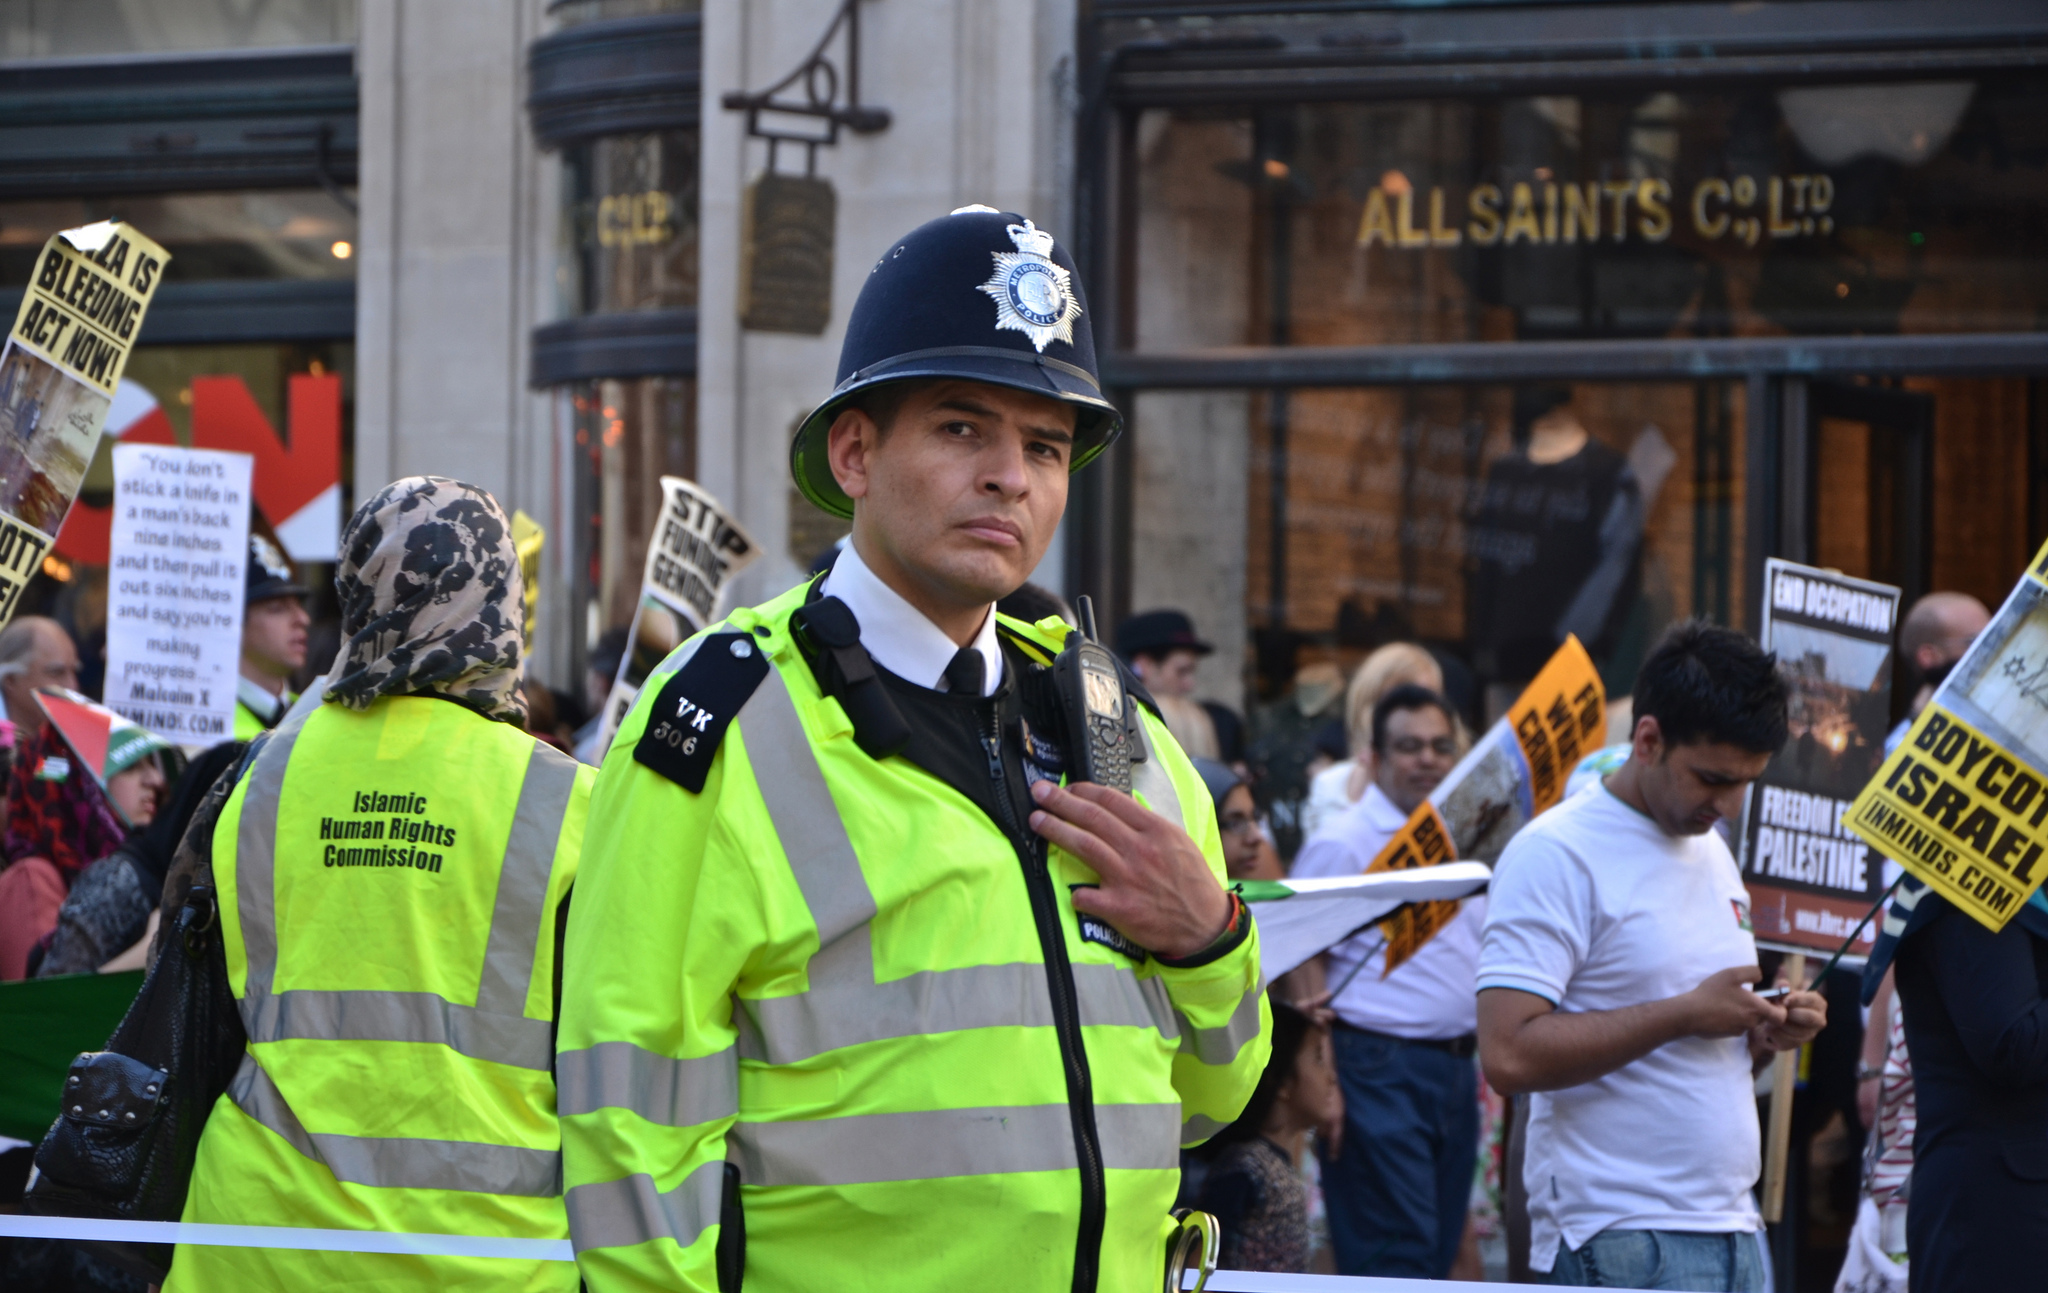 police at a protest in 2012